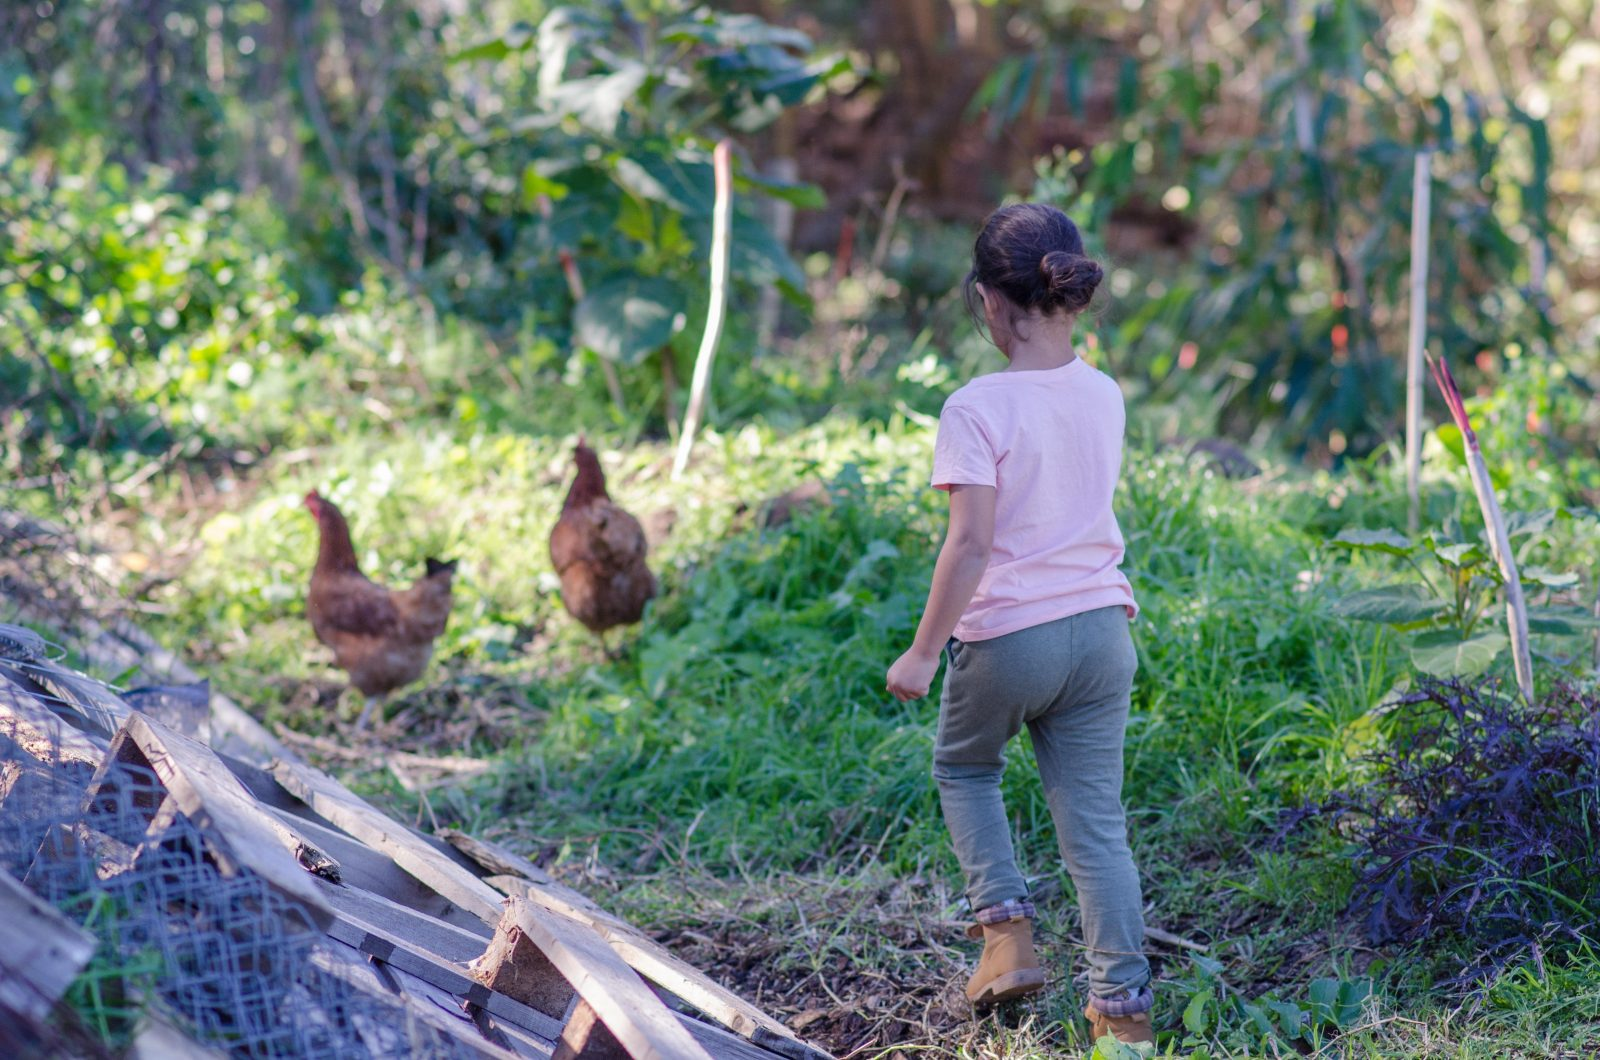 Child chasing chickens on the Green Connect farm